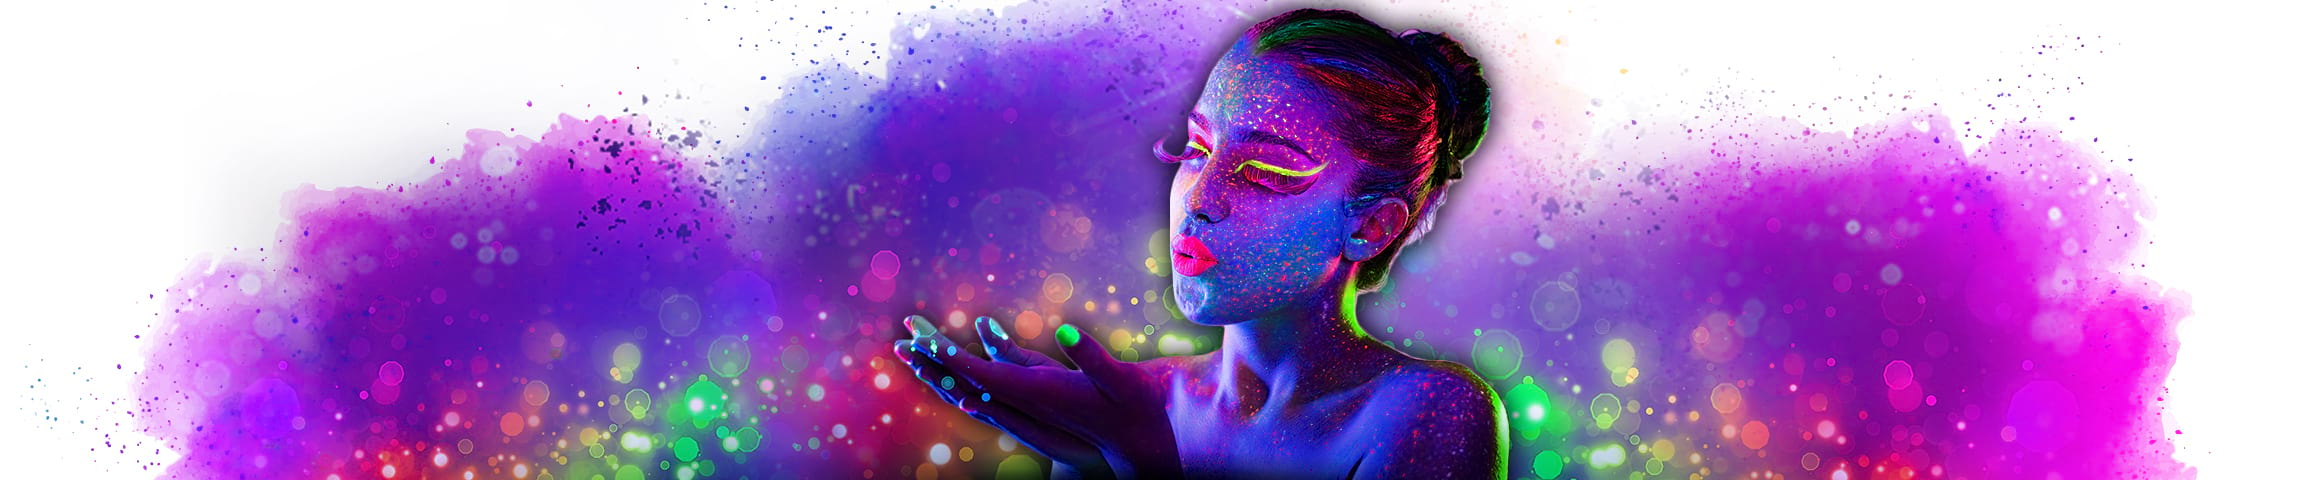 Blacklight makeup